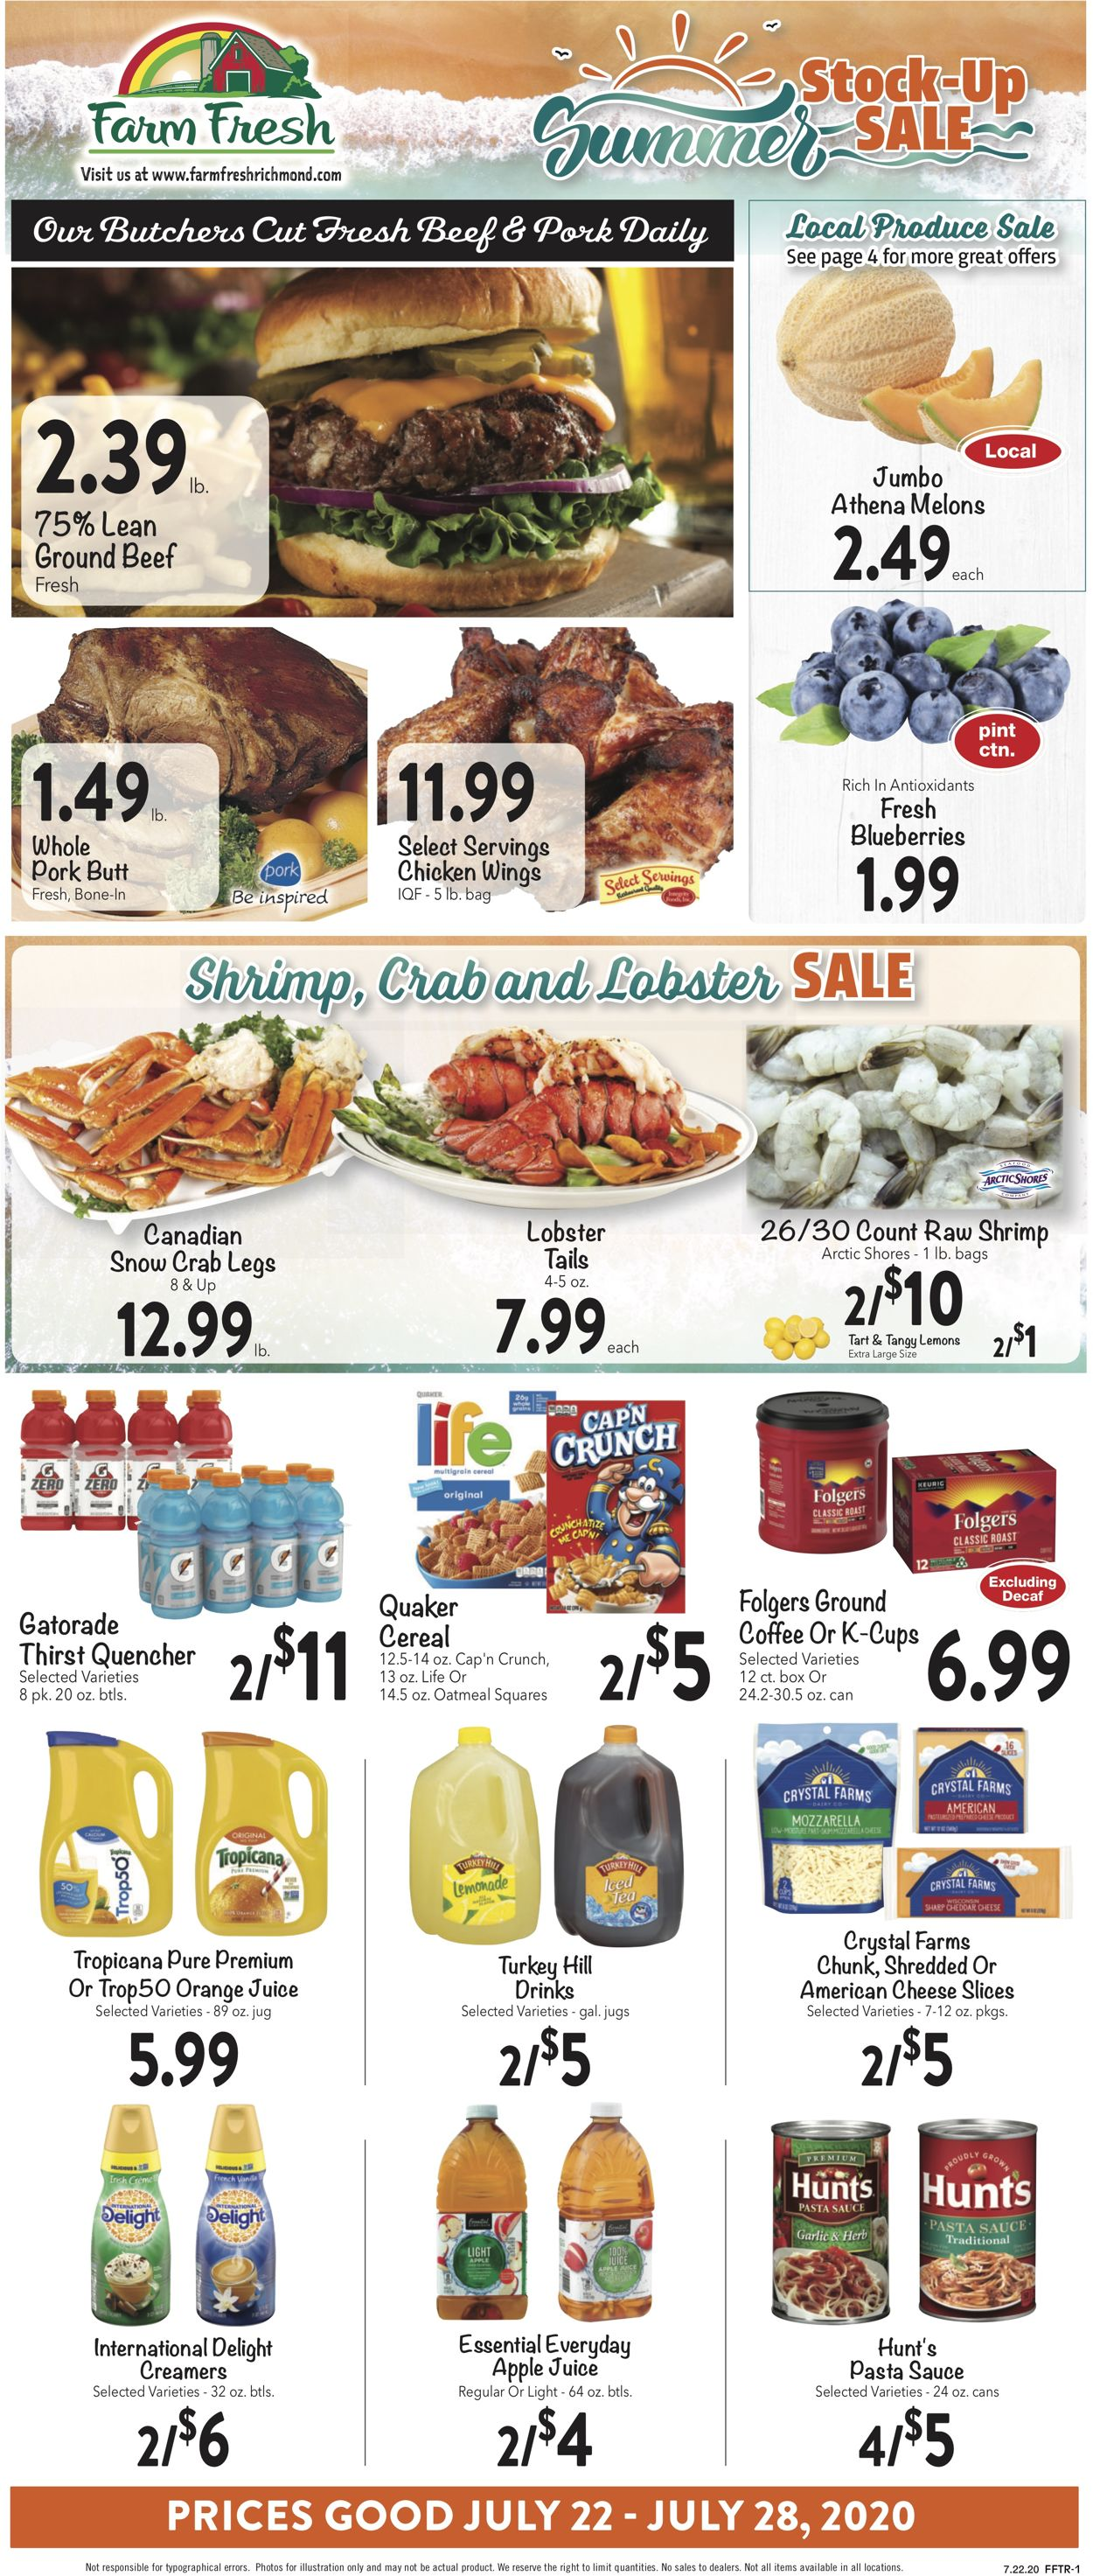 Farm Fresh Weekly Ad Circular - valid 07/22-07/28/2020